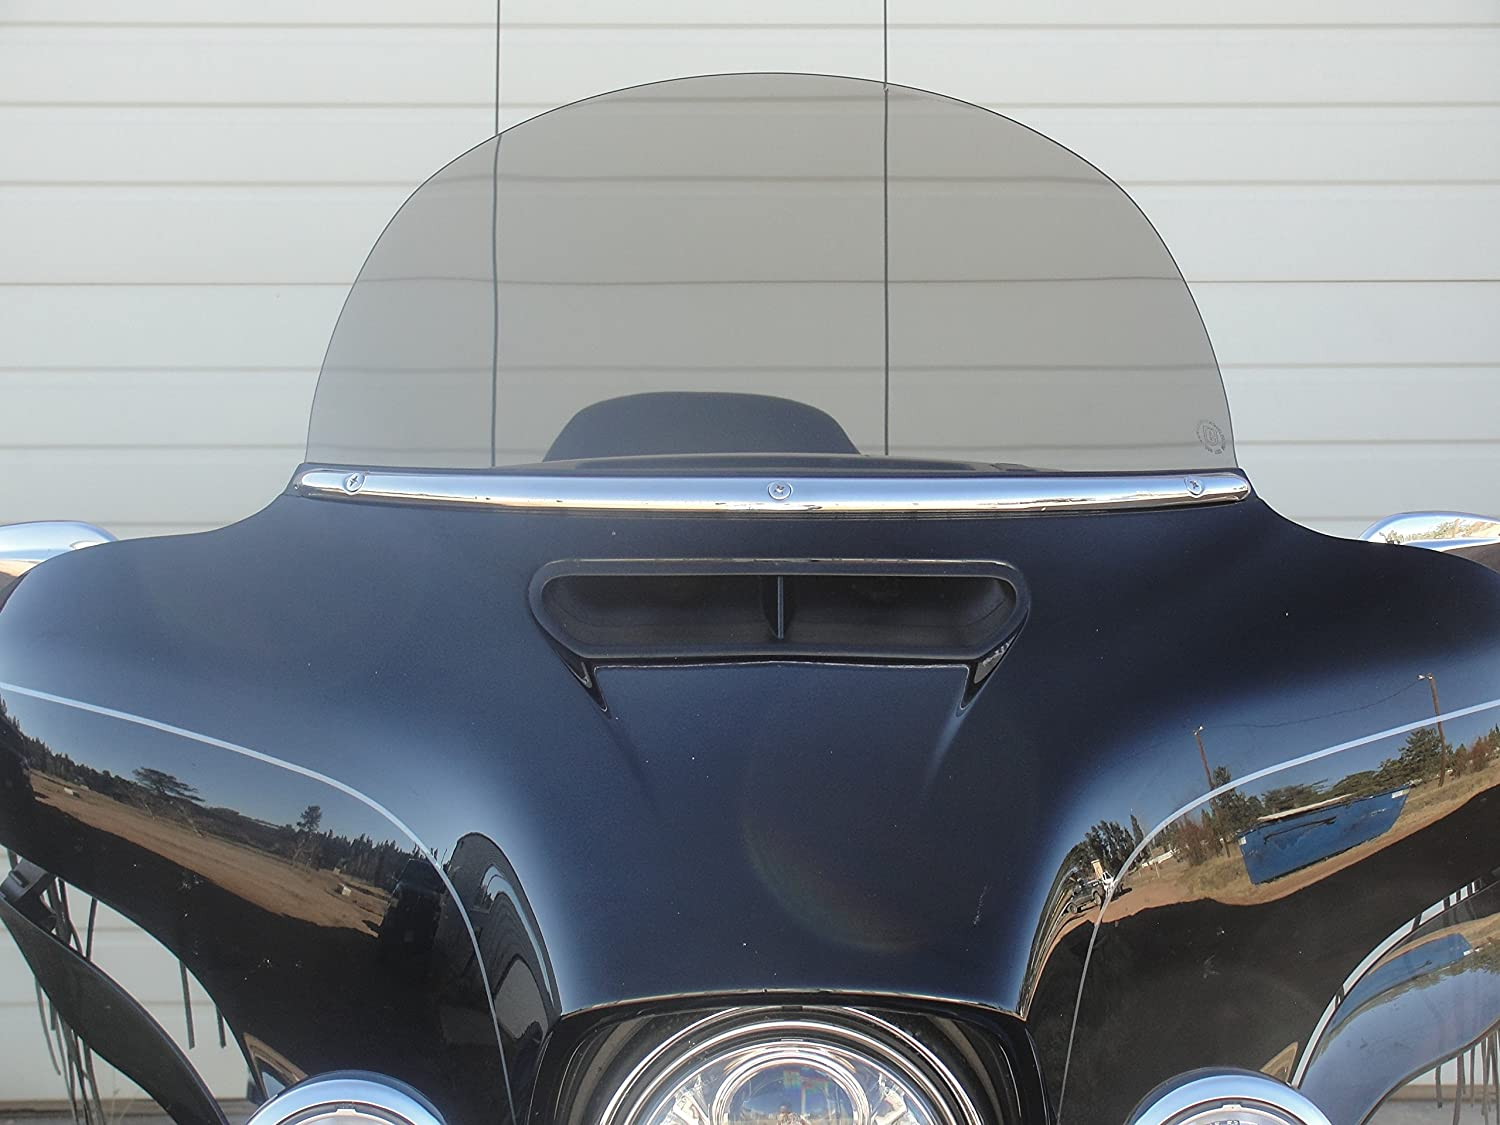 Harley Davidson 10' light tint windshield for 1996-2013 Street Glide/Electra Glide/Ultra Classic/Tri-Glide, made of superior quality 7130 Makrolan polycarbonate with 50% light transmission Sled Shields